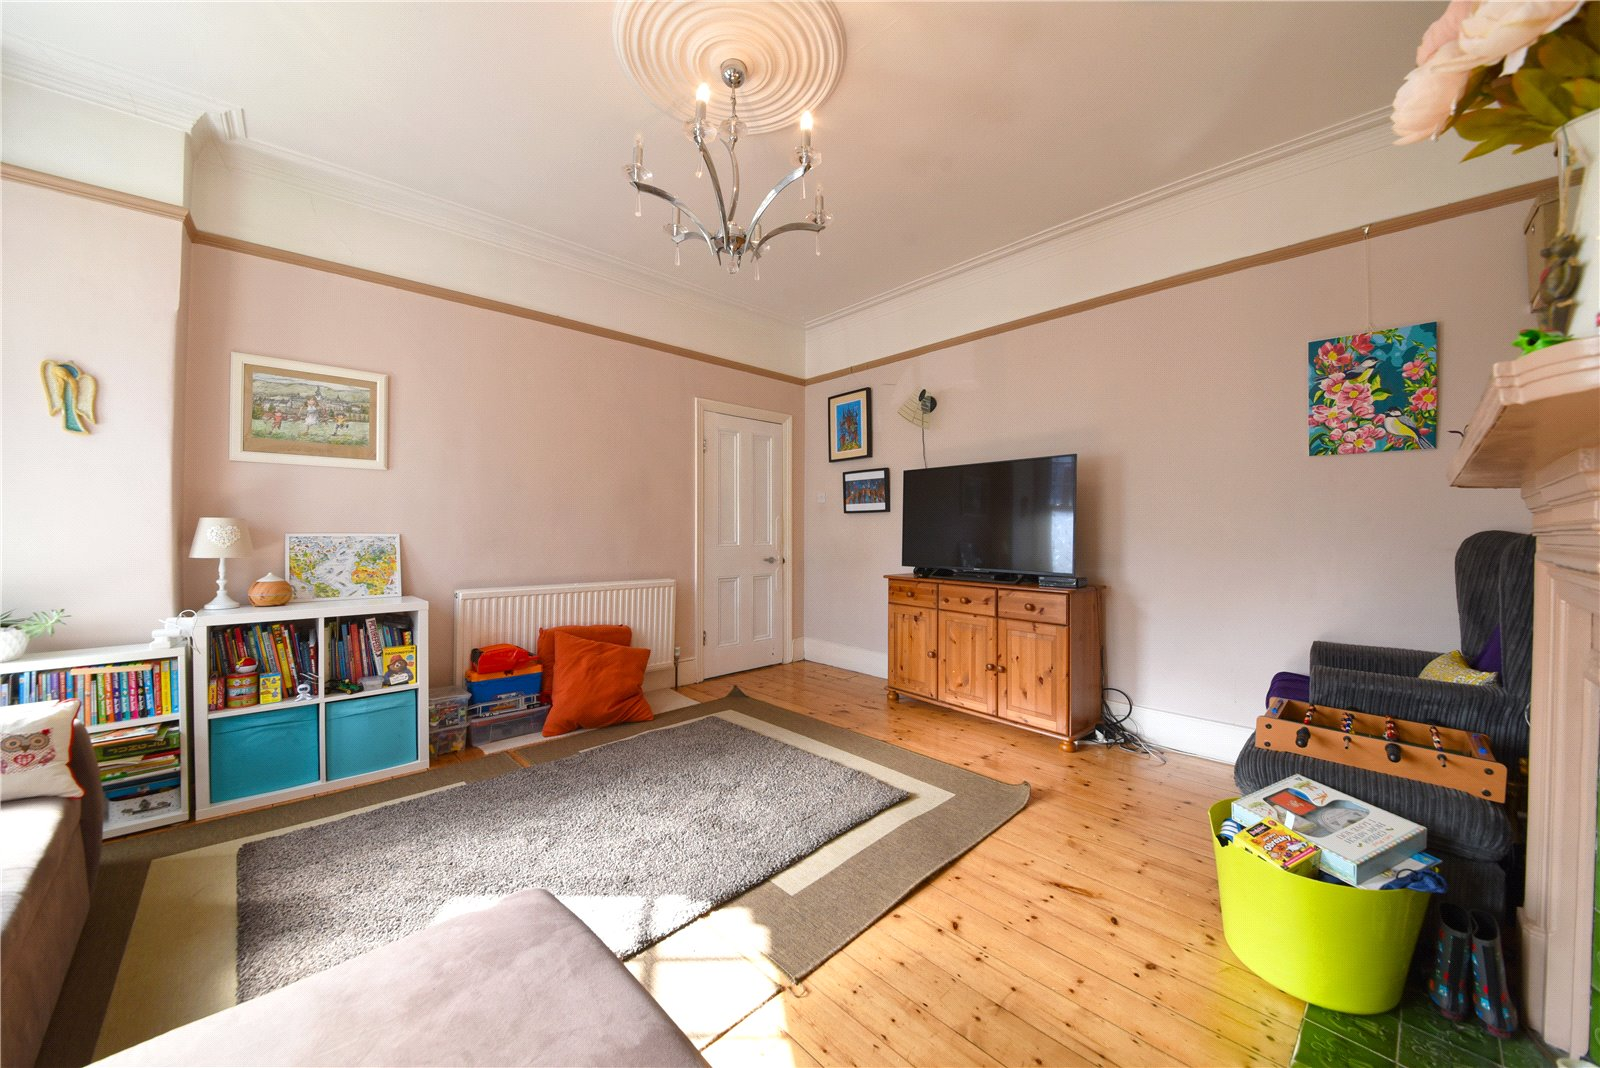 2 bed apartment for sale in East Finchley, N2 0SX  - Property Image 1